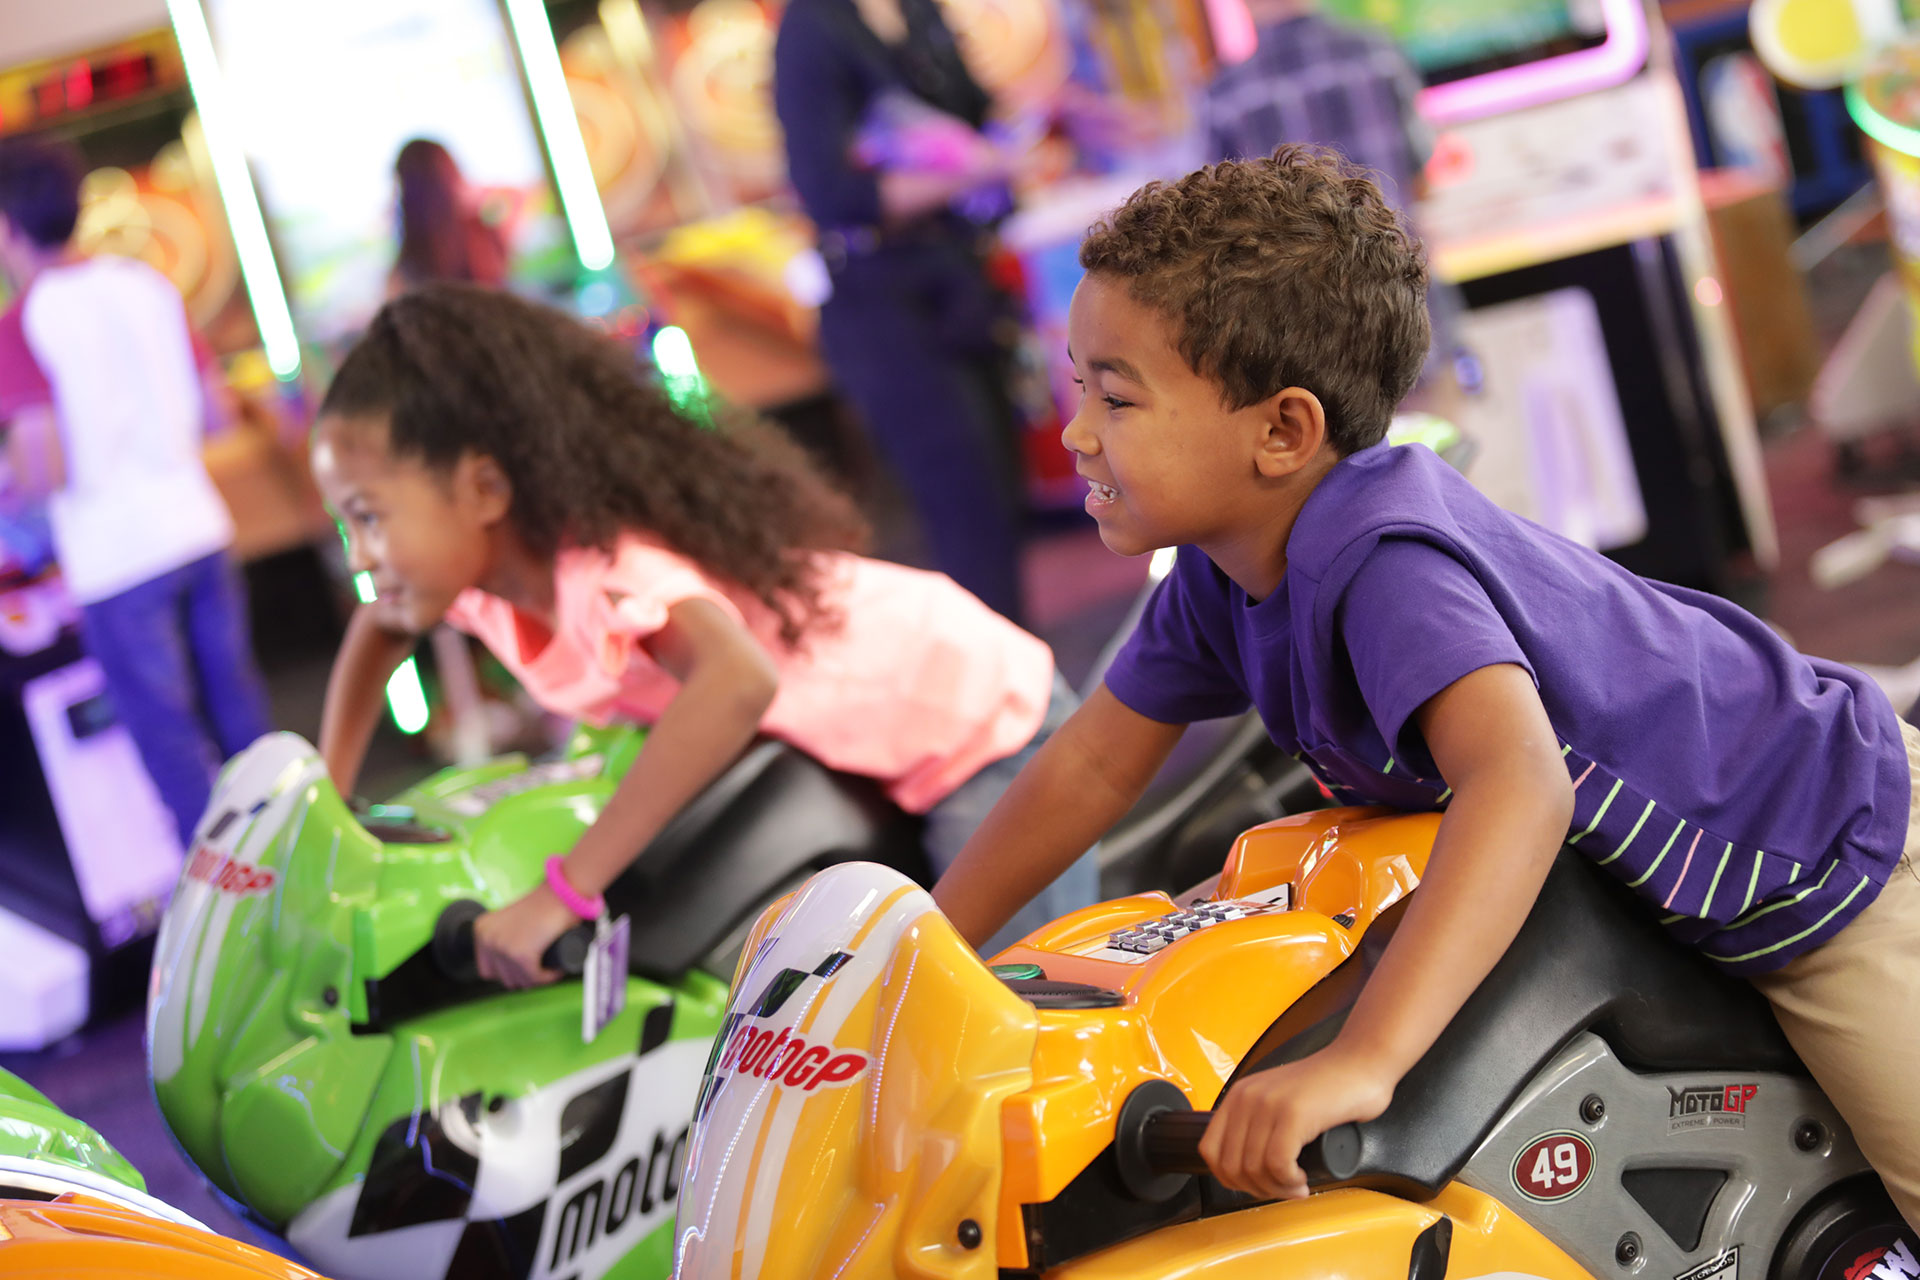 Kids on motorcycle arcade game